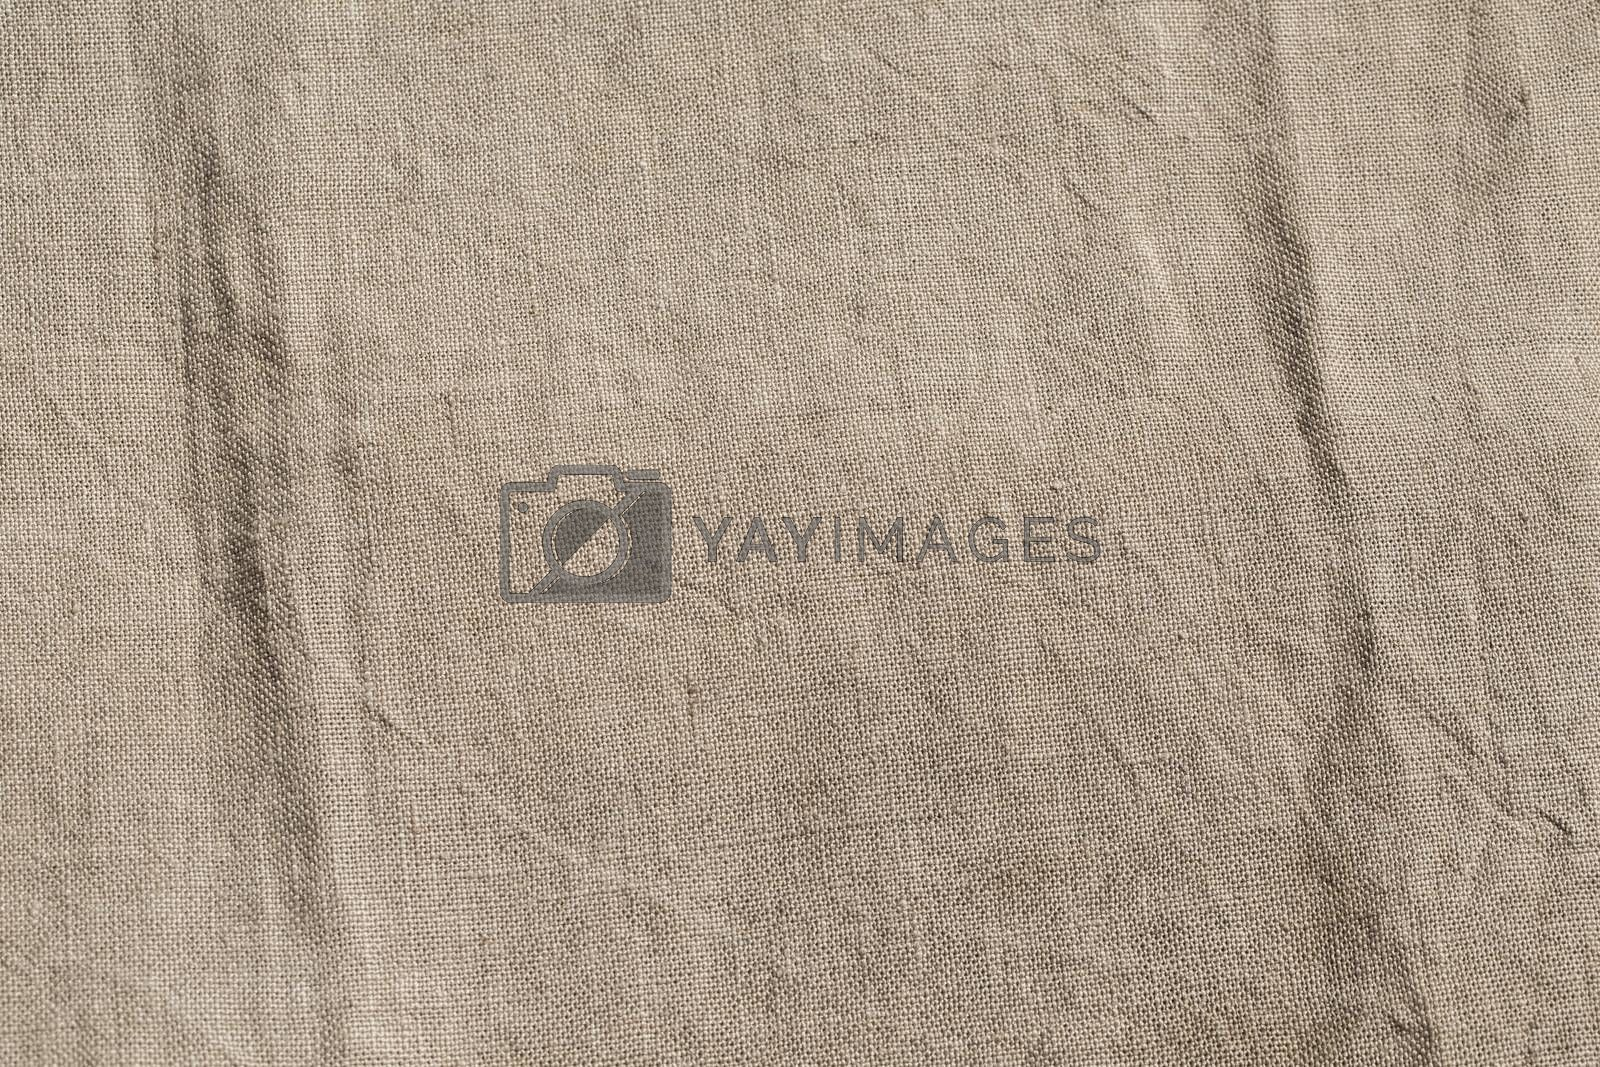 Close-up picture of a jute canvas with folds.